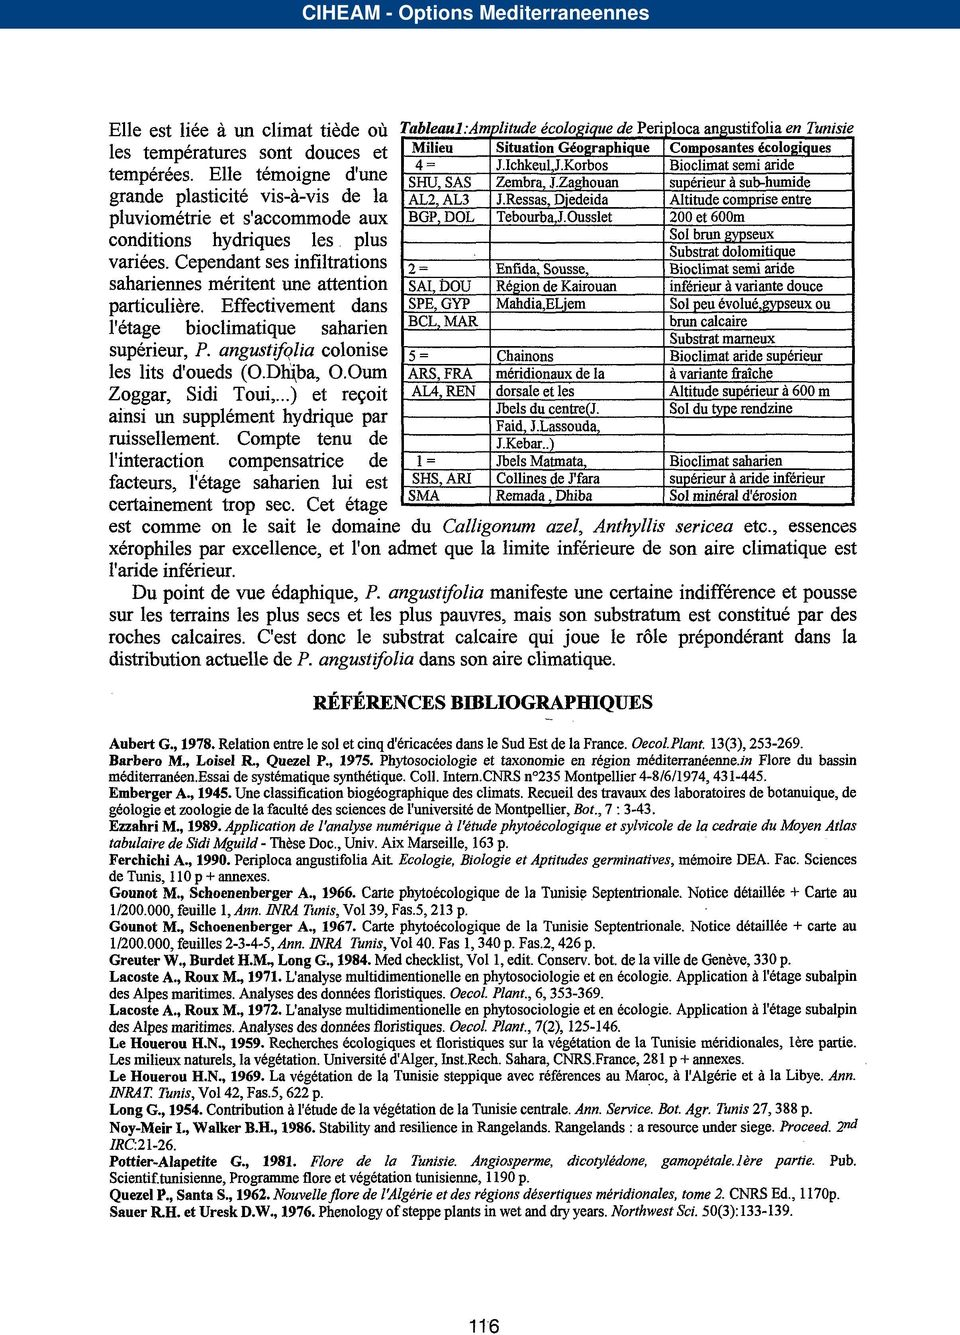 , 1978. Barbero Quezel 1975. Emberger A., 1945. géologie : 343. Ezzahri 1989. Application de l'analyse numérique Ferchichi A., 1990. de Tunis, 110 + p annexes. Ait Gounot Schoenenberger A., 1966.